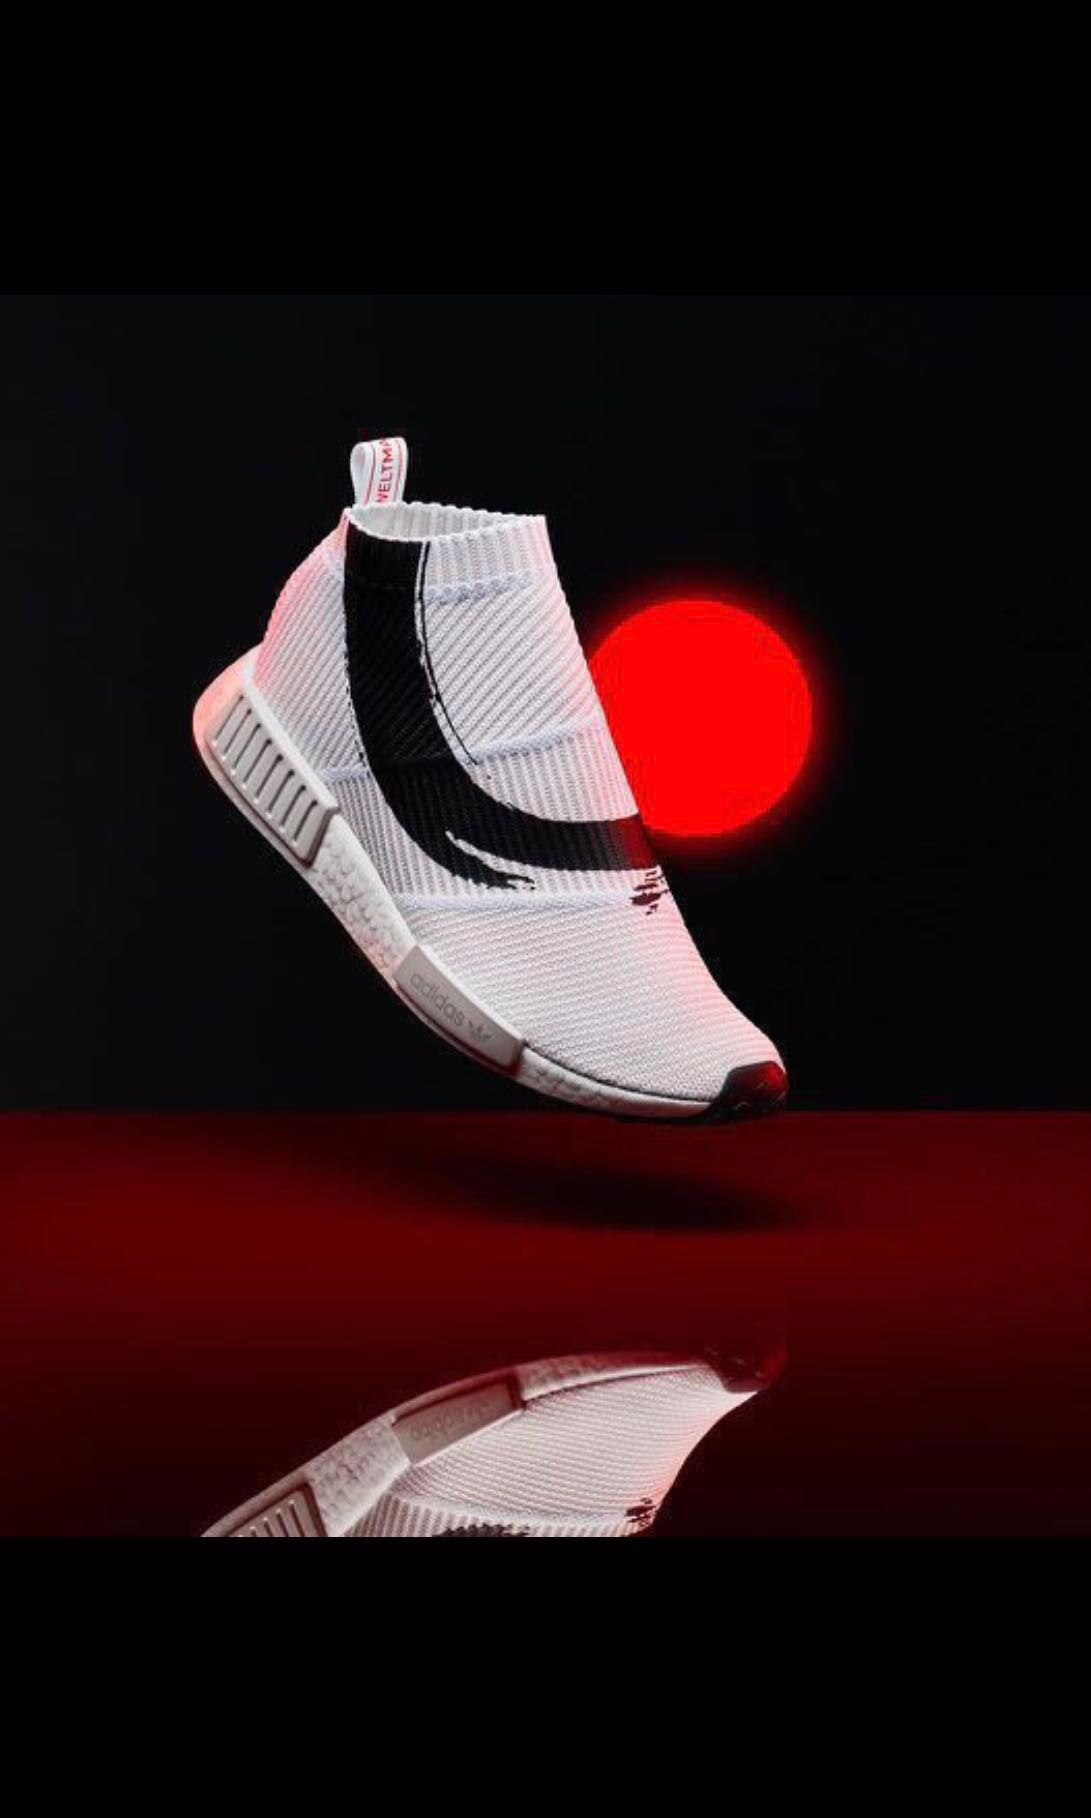 24a893fe06fe9 Adidas ENERGY NMD CS1 PK in UK 9 (KOI FISH)